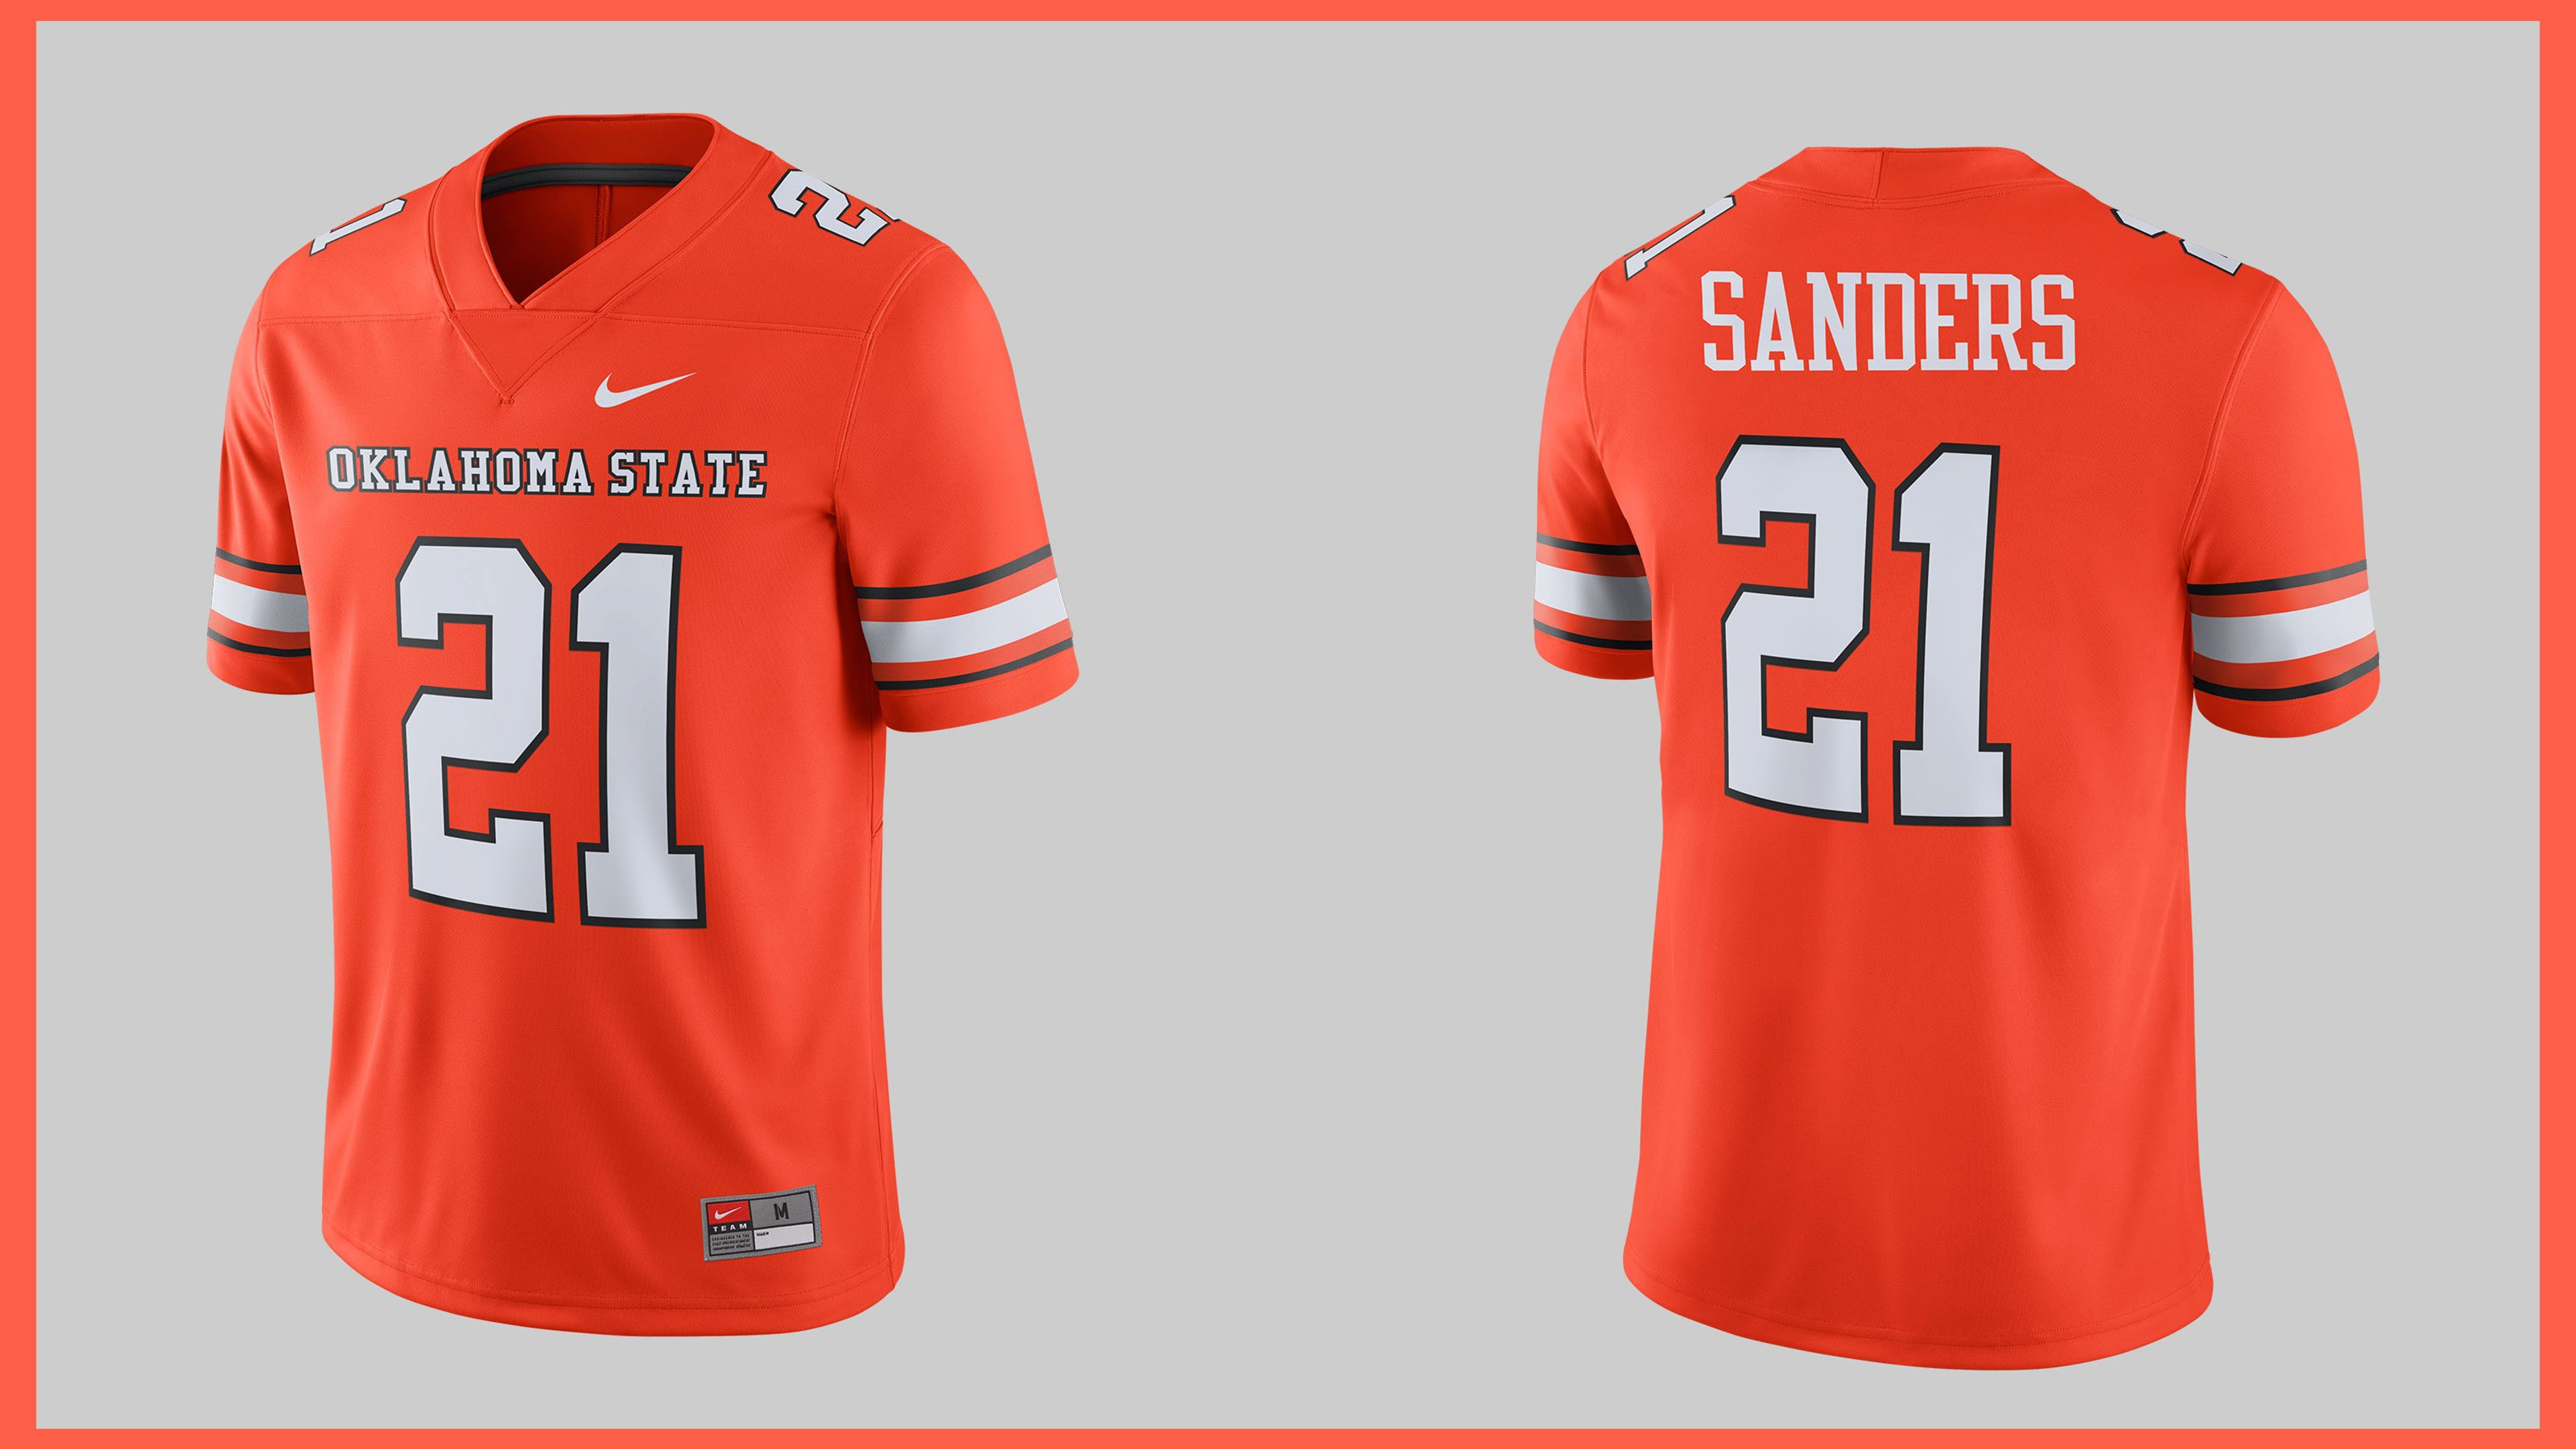 ccac59b7a Donned by Barry Sanders during one of the greatest individual seasons in  college football history, a version of this '88 Oklahoma State University  throwback ...